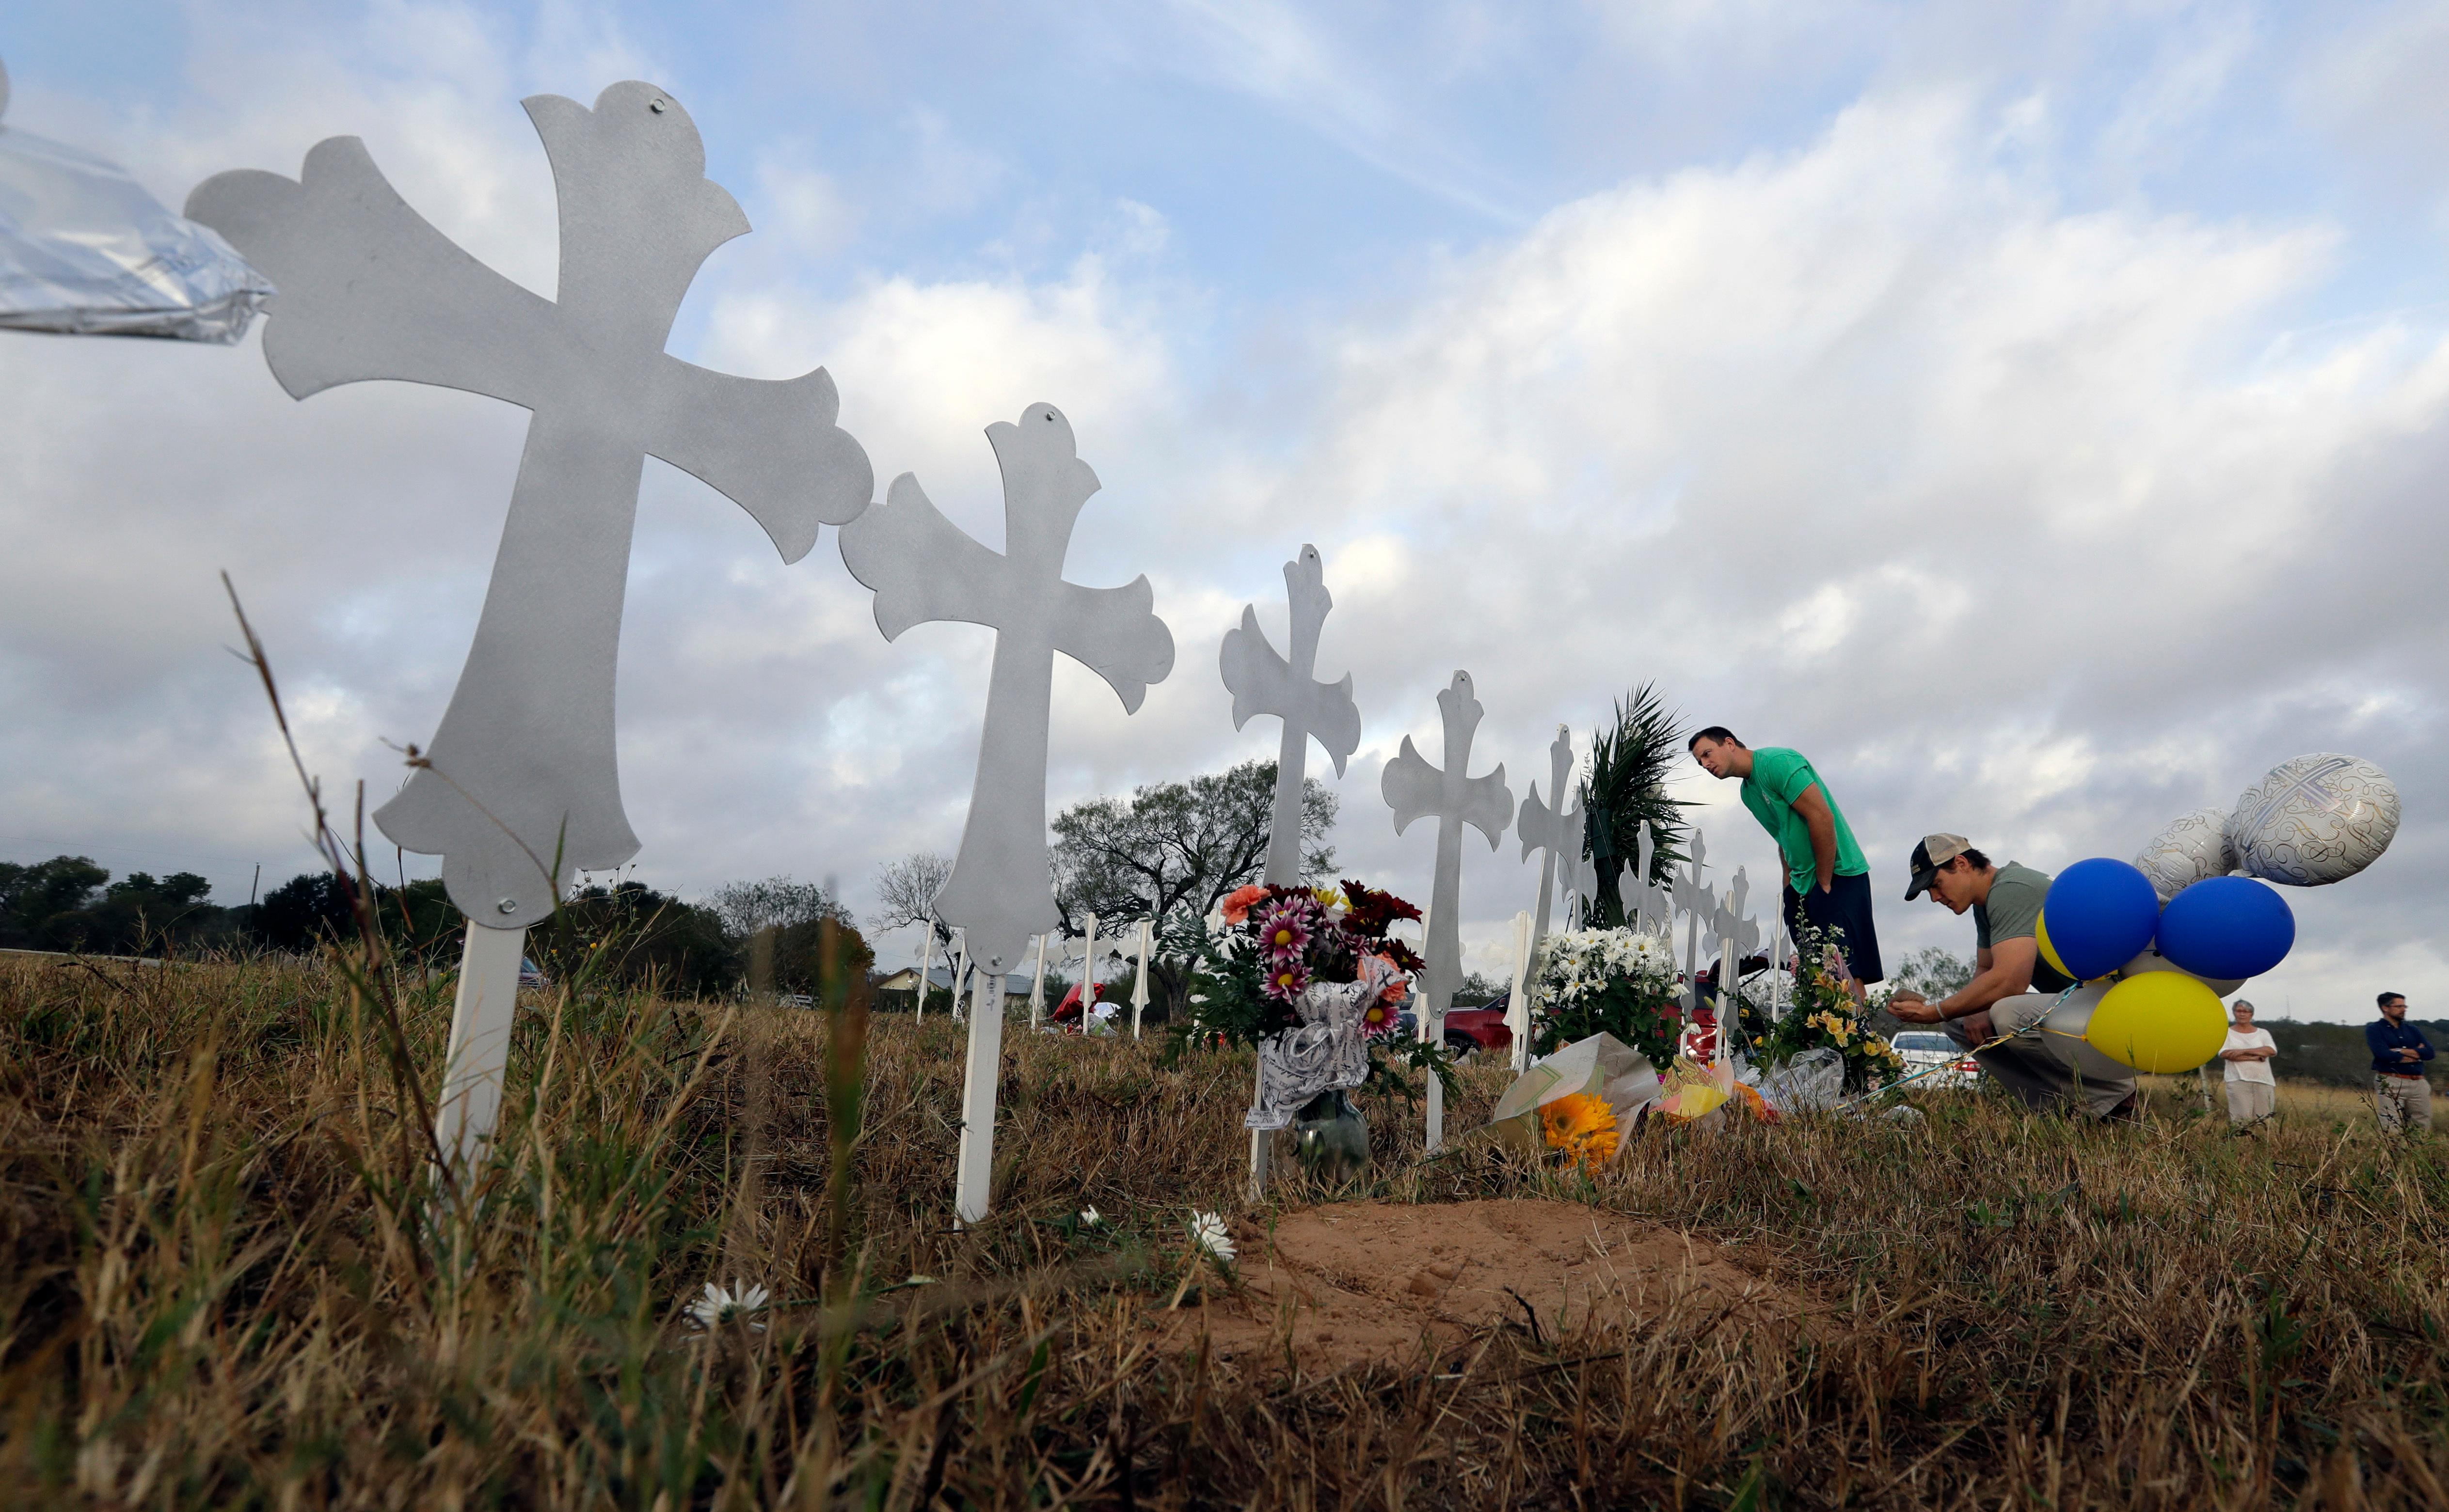 Kevin Blomstrum, left, and Kyle Dahlberg visit a makeshift memorial for victims near the scene of a shooting at the First Baptist Church of Sutherland Springs, Tuesday, Nov. 7, 2017, in Sutherland Springs, Texas. A man opened fire inside the church in the small South Texas community on Sunday, killing more than two dozen and injuring others. (AP Photo/Eric Gay)